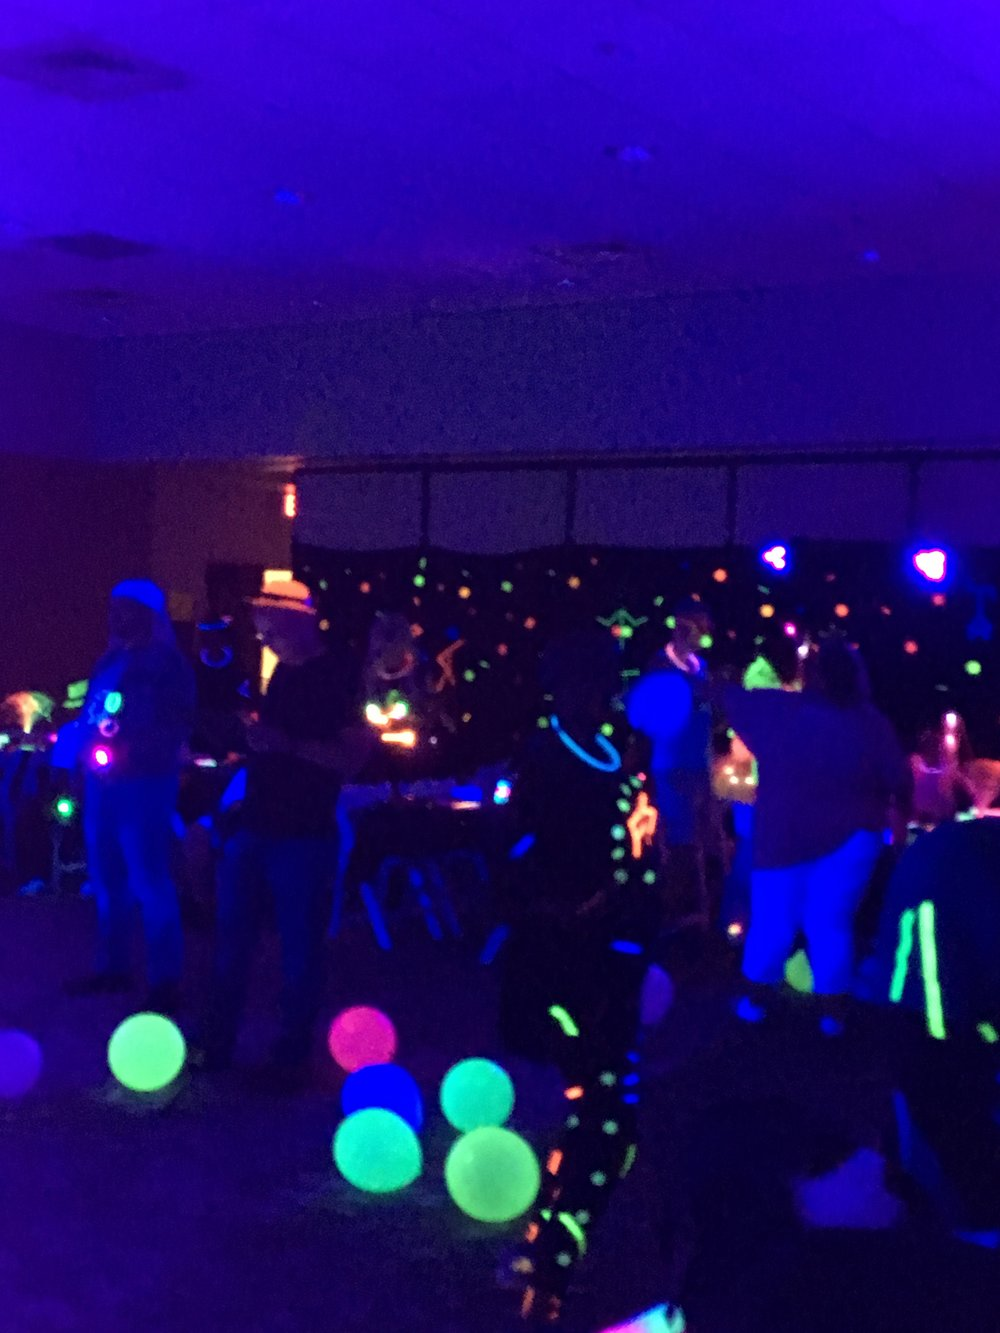 Full Contact Karaoke band at the FMS Glow party 2018